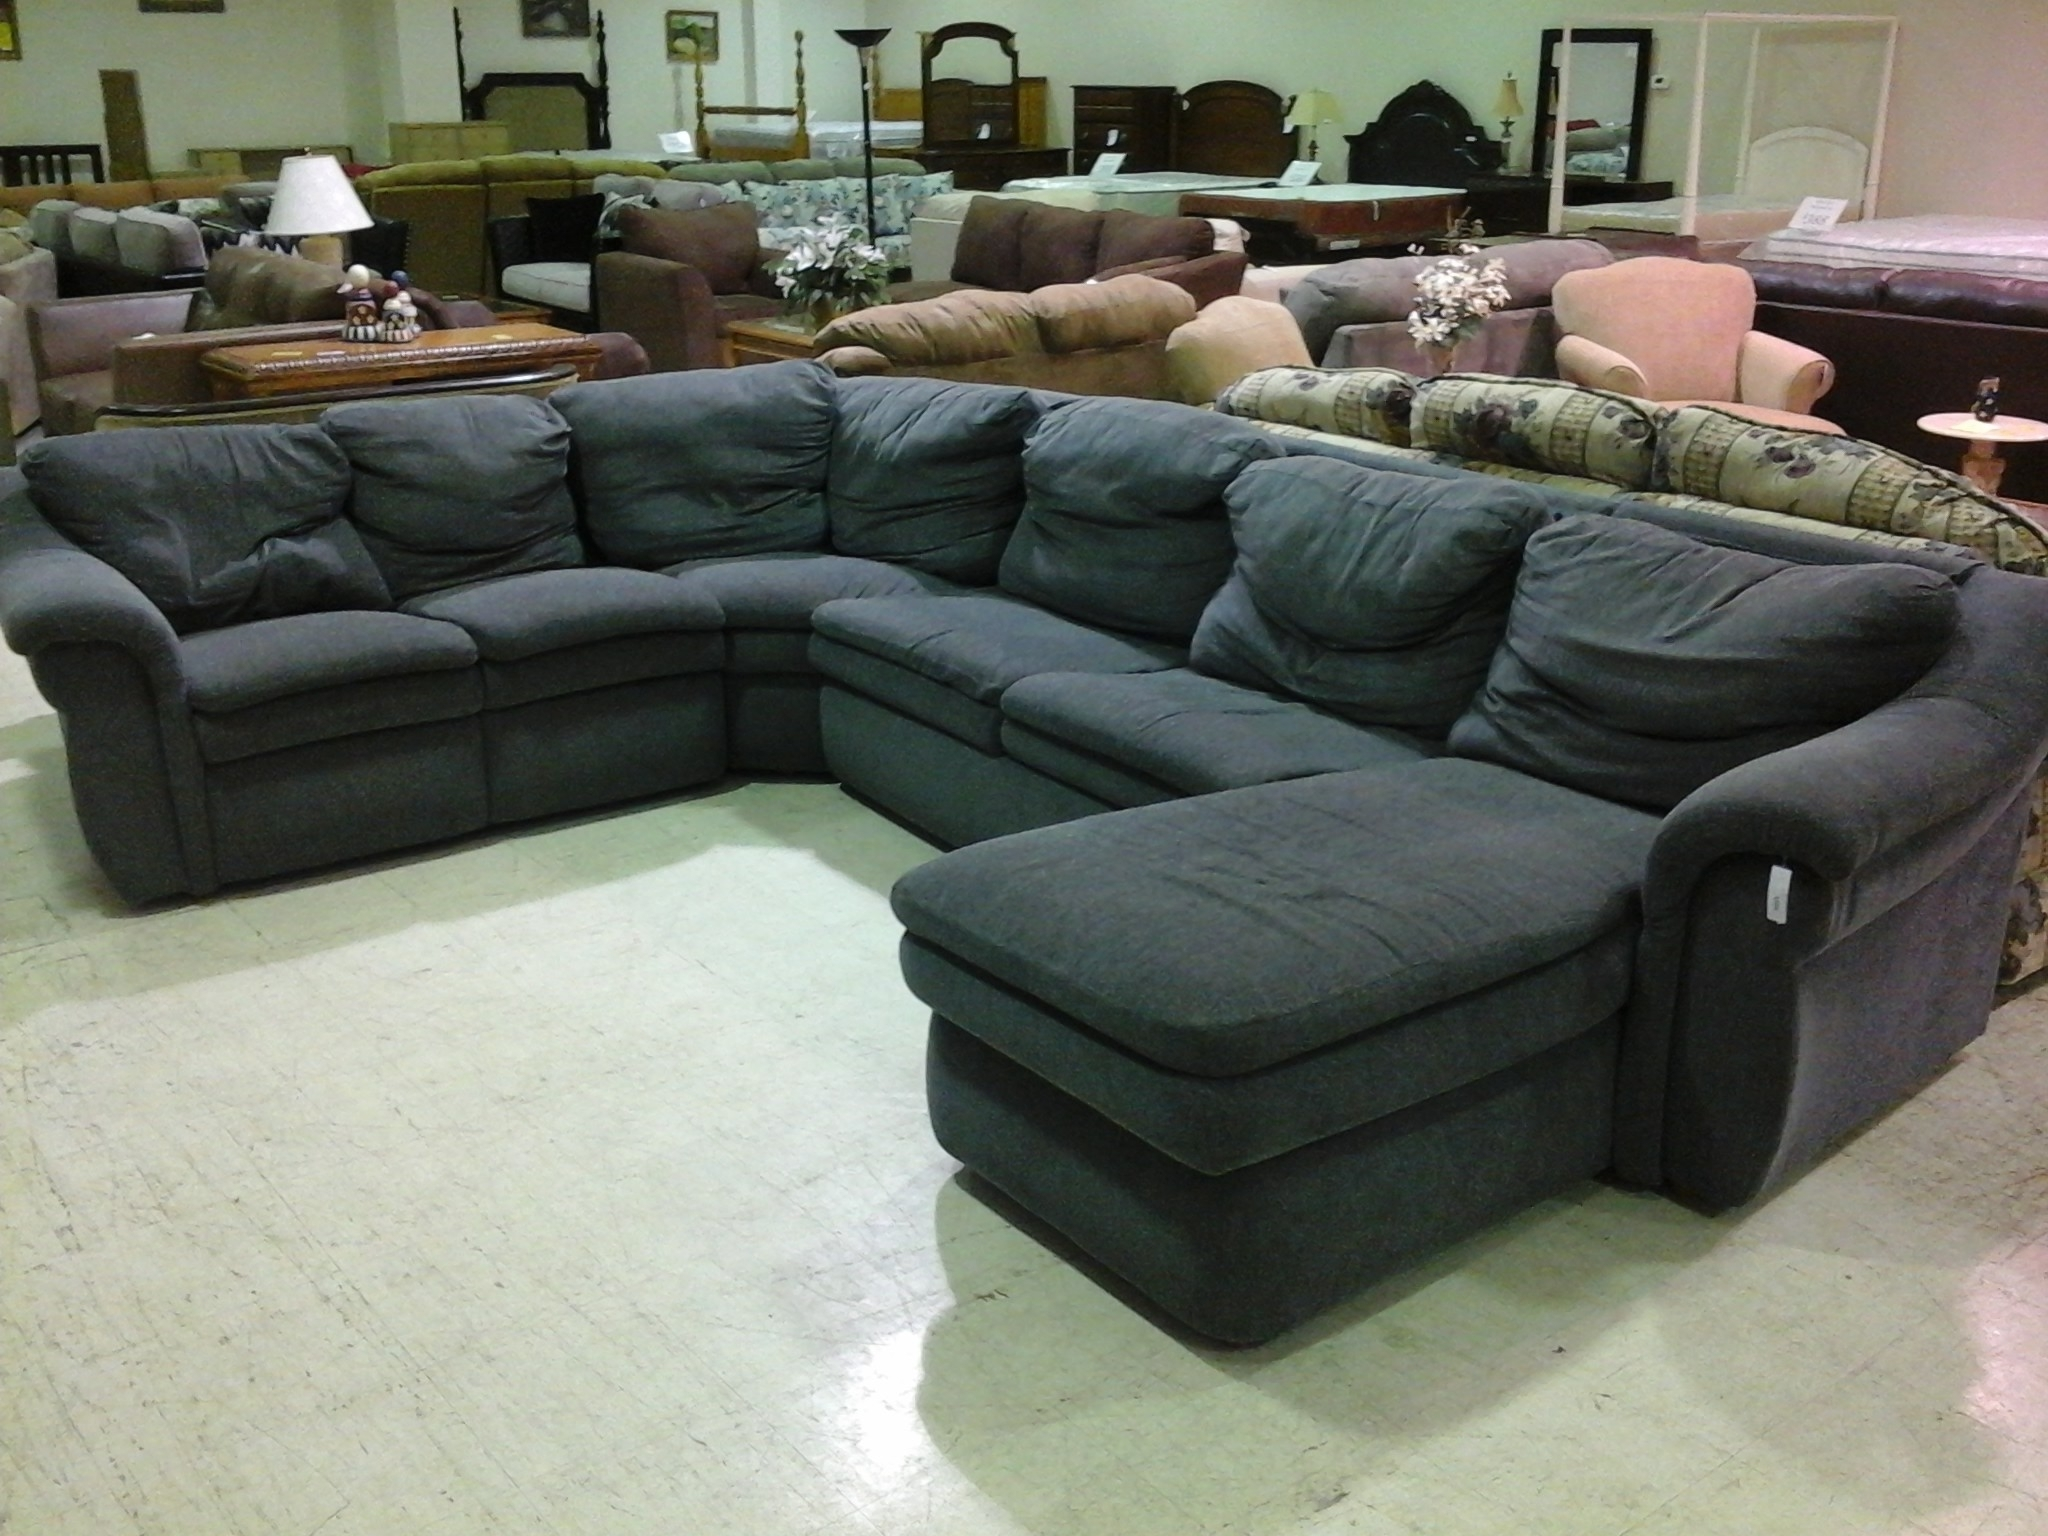 Well Liked Sofa : Big Lots Sectional Sofas Manhattan Sectional Sofa Big Lots Regarding Sectional Sofas At Big Lots (View 15 of 15)